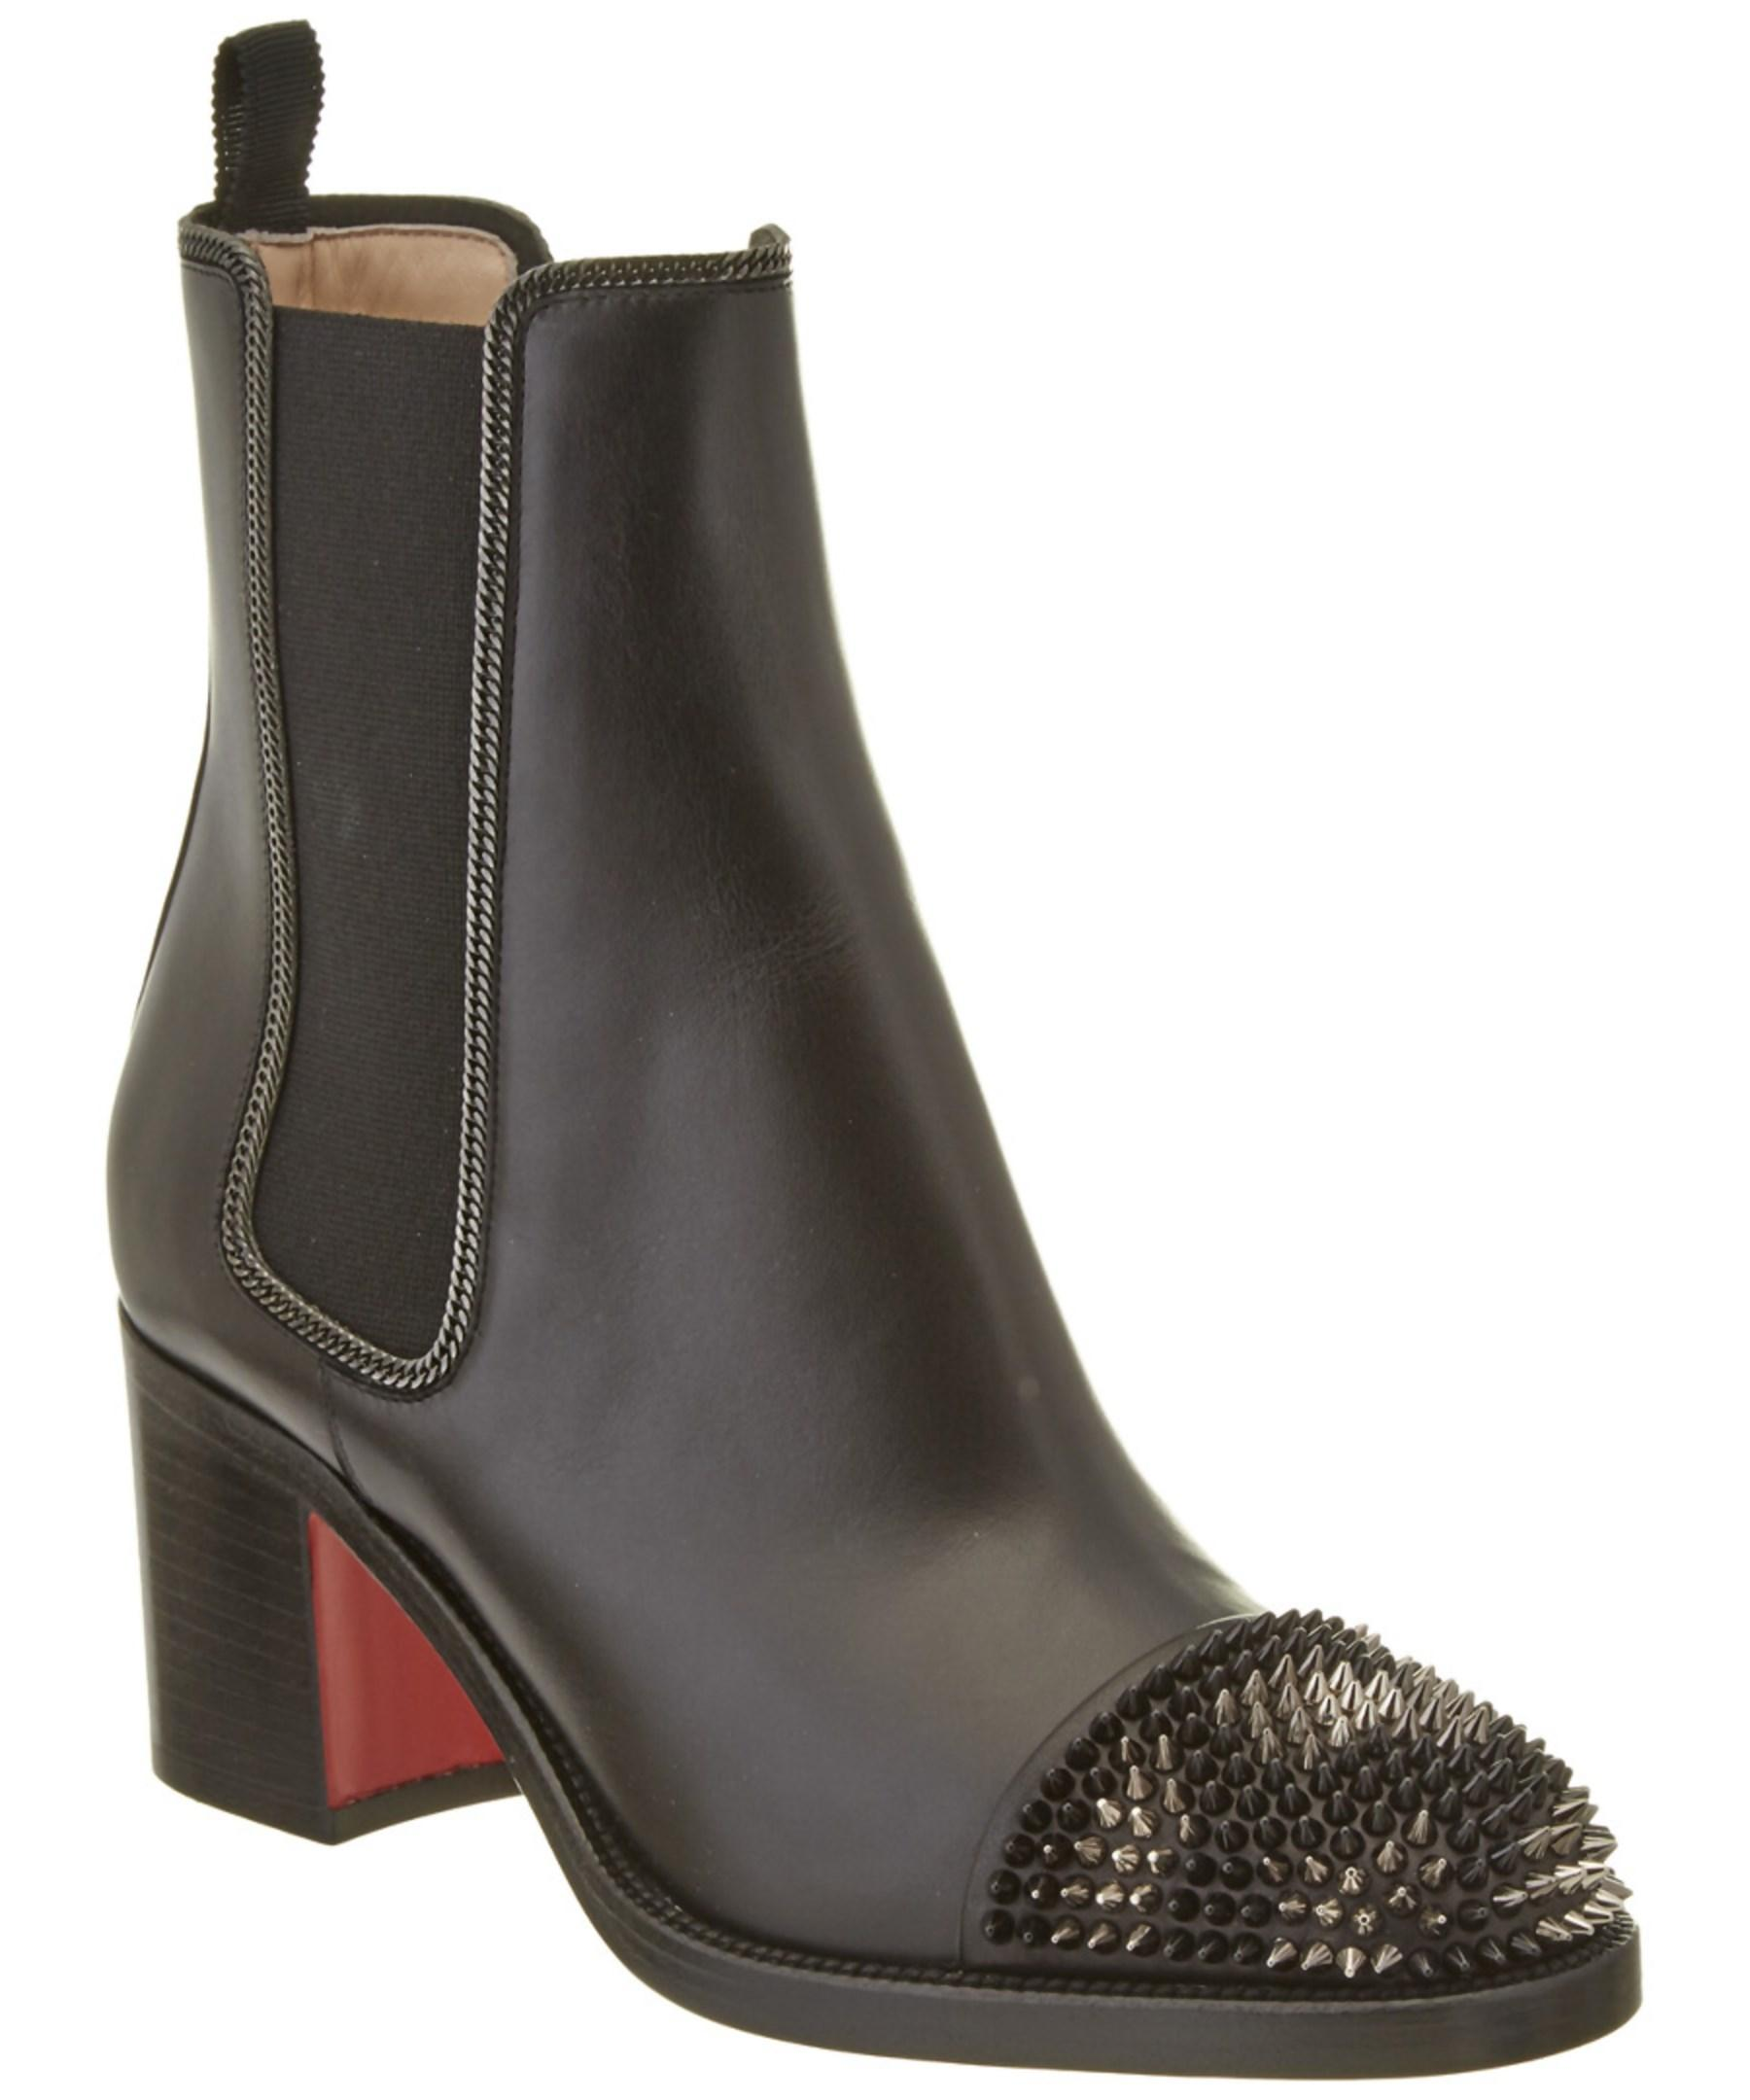 christian louboutin otaboo 70 spiked toe leather boot in